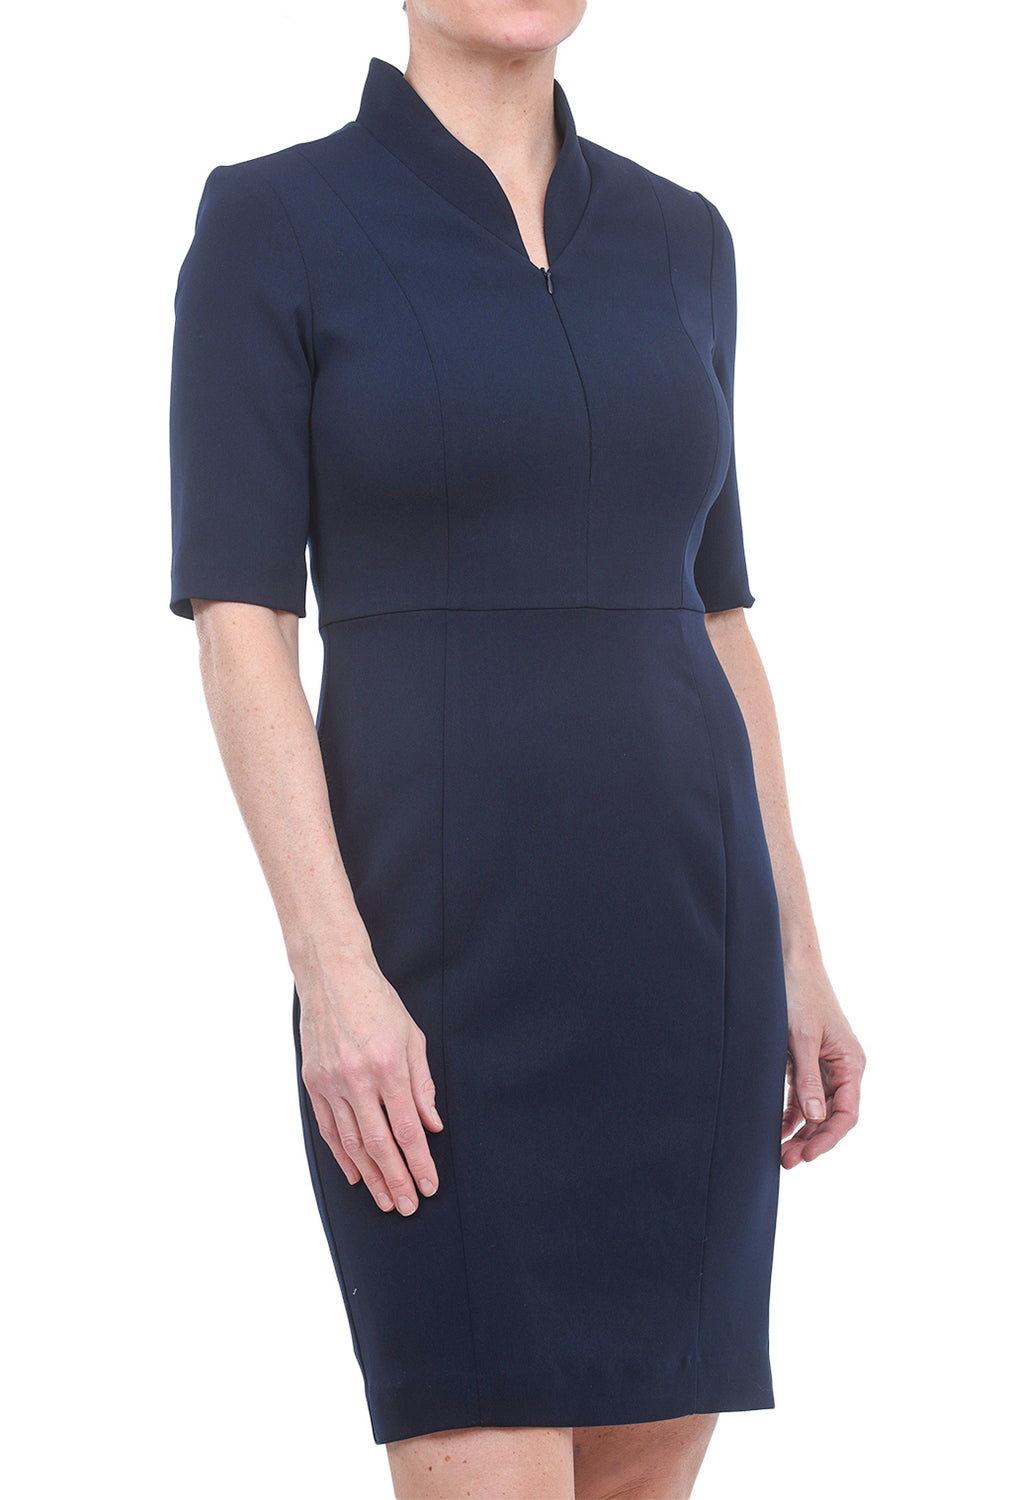 Nora Gardner Evelyn Sleeved Dress, Navy